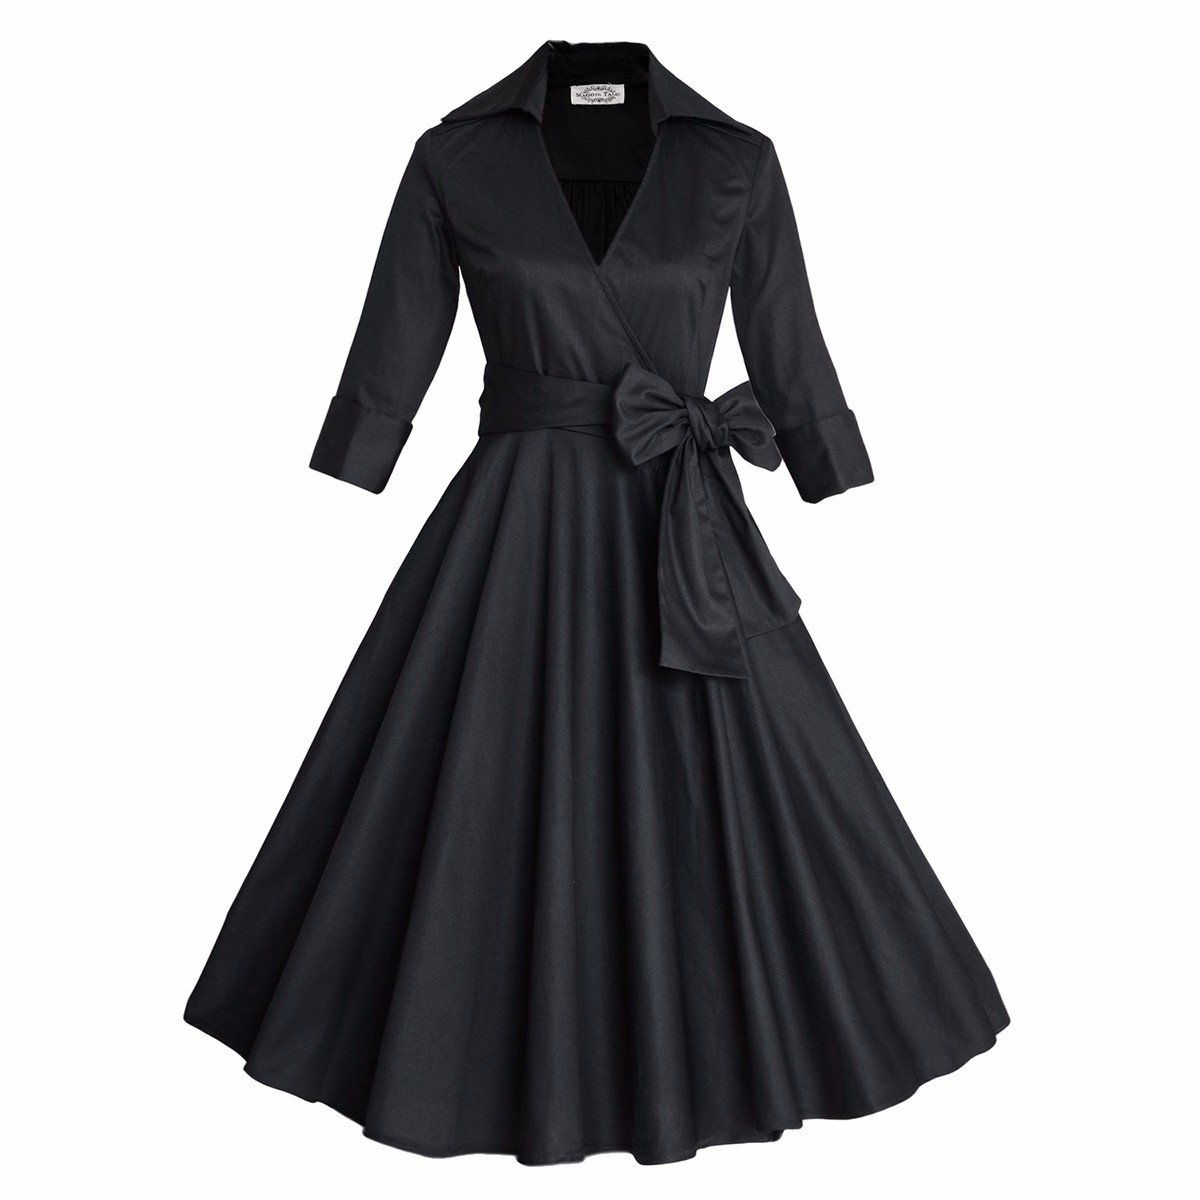 What Did Women Wear in the 1950s? Samtree Womens 50s Style Half Sleeves Deep V Neck Vintage Swing Polka Dot Dress $27.99 AT vintagedancer.com